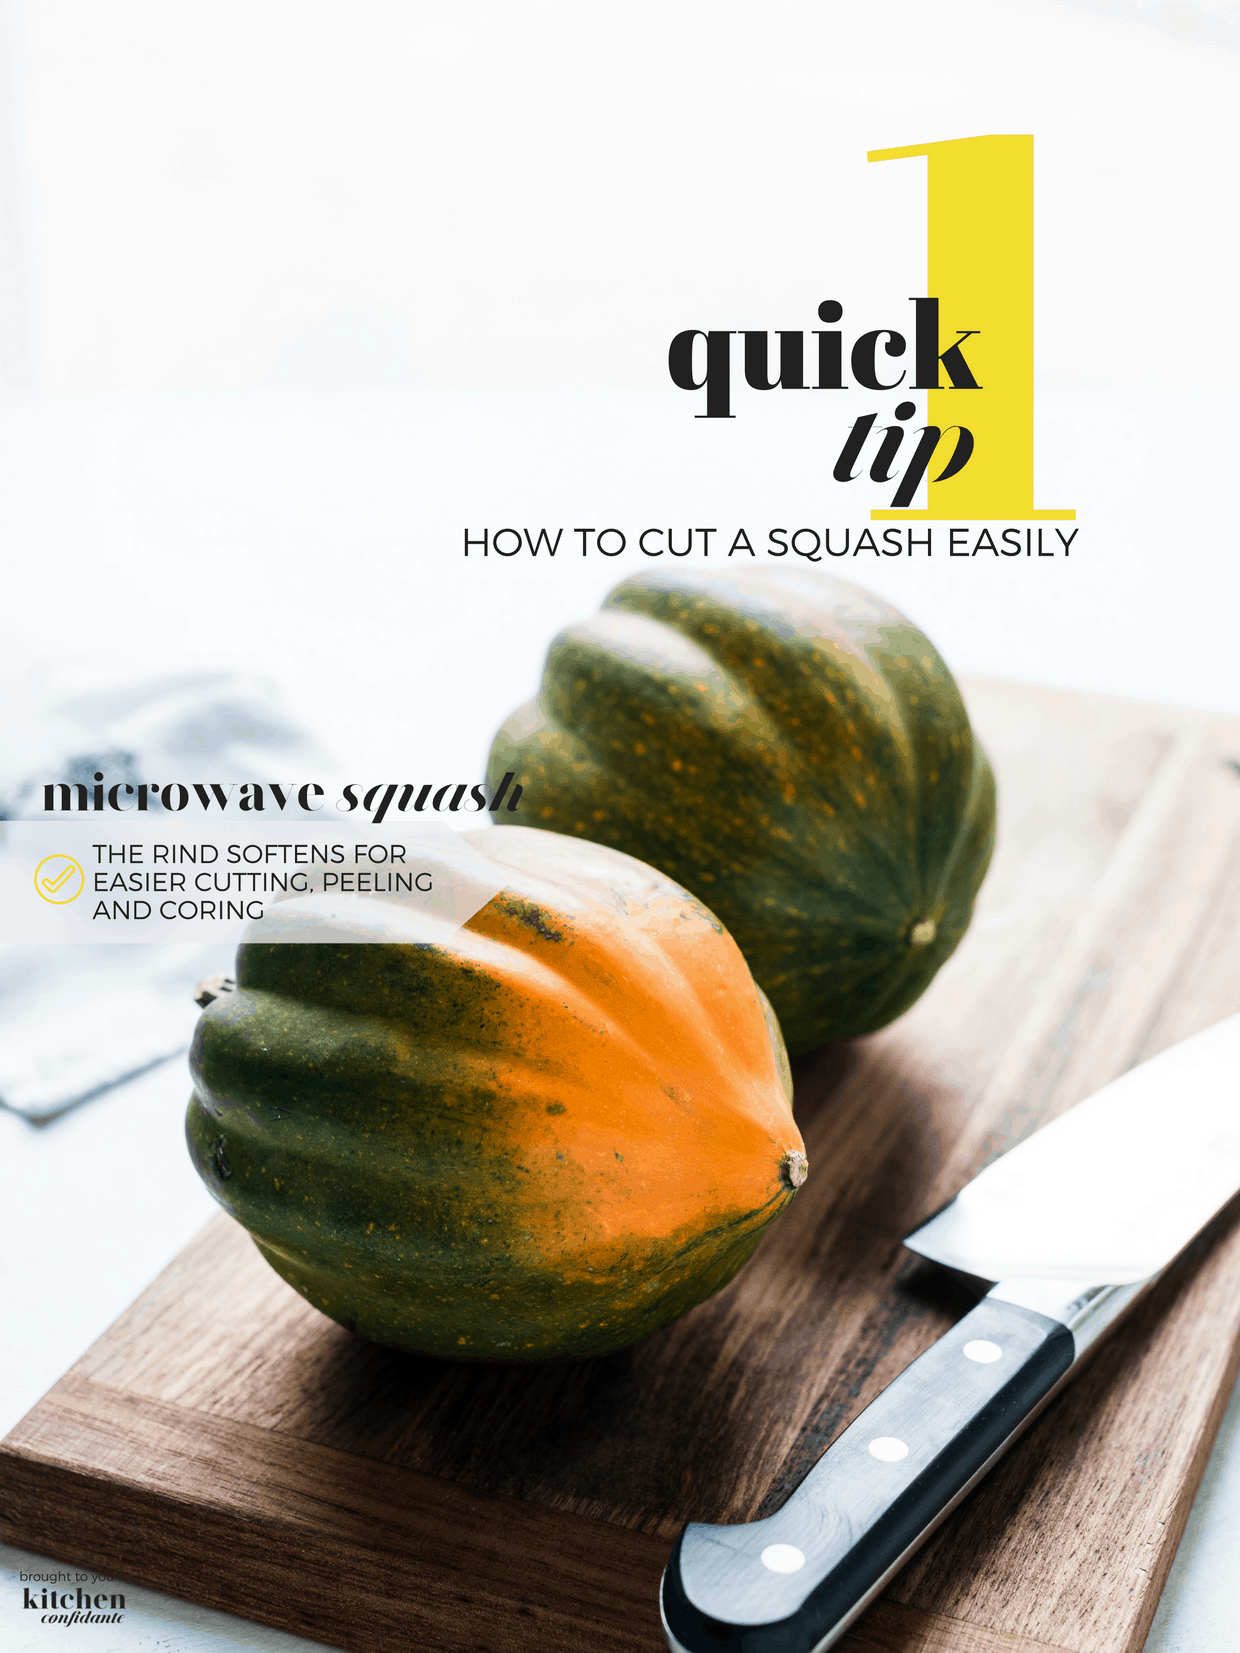 Trouble slicing into the tough rind of a squash? Learn how to cut a squash easily with One Quick Tip using the microwave that makes cutting, peeling and coring squash a breeze!